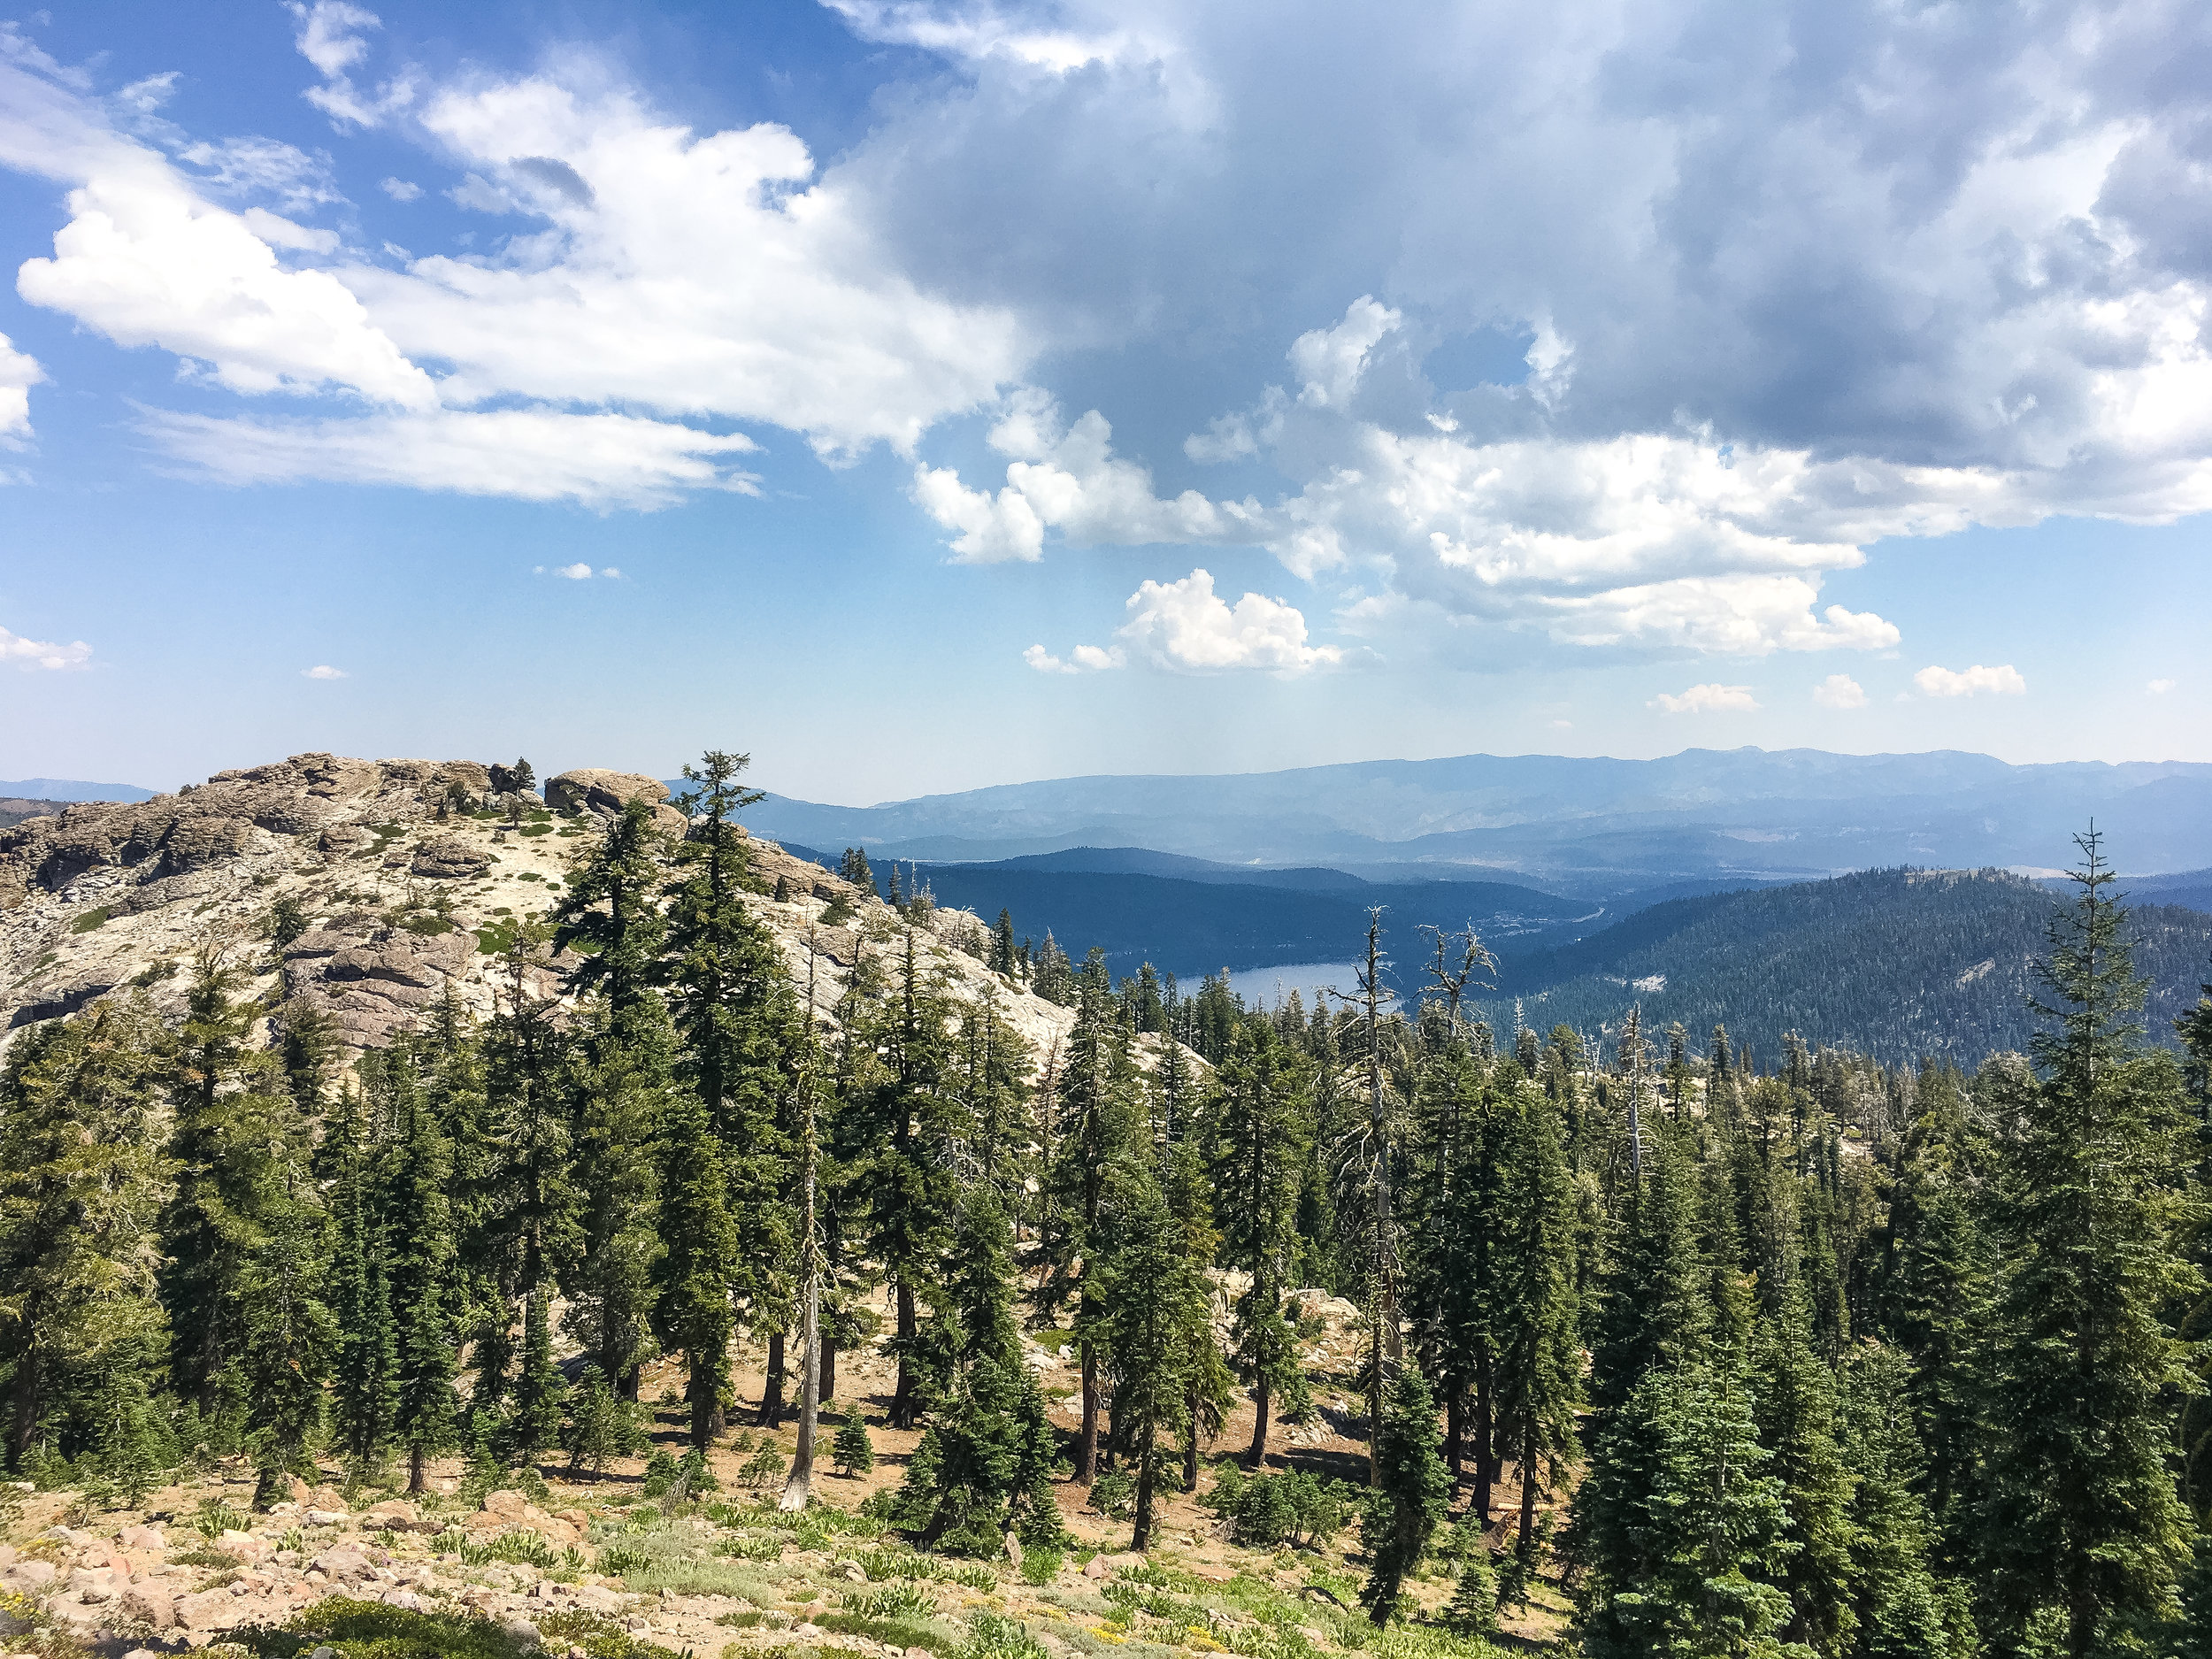 Donner Peak, to the left